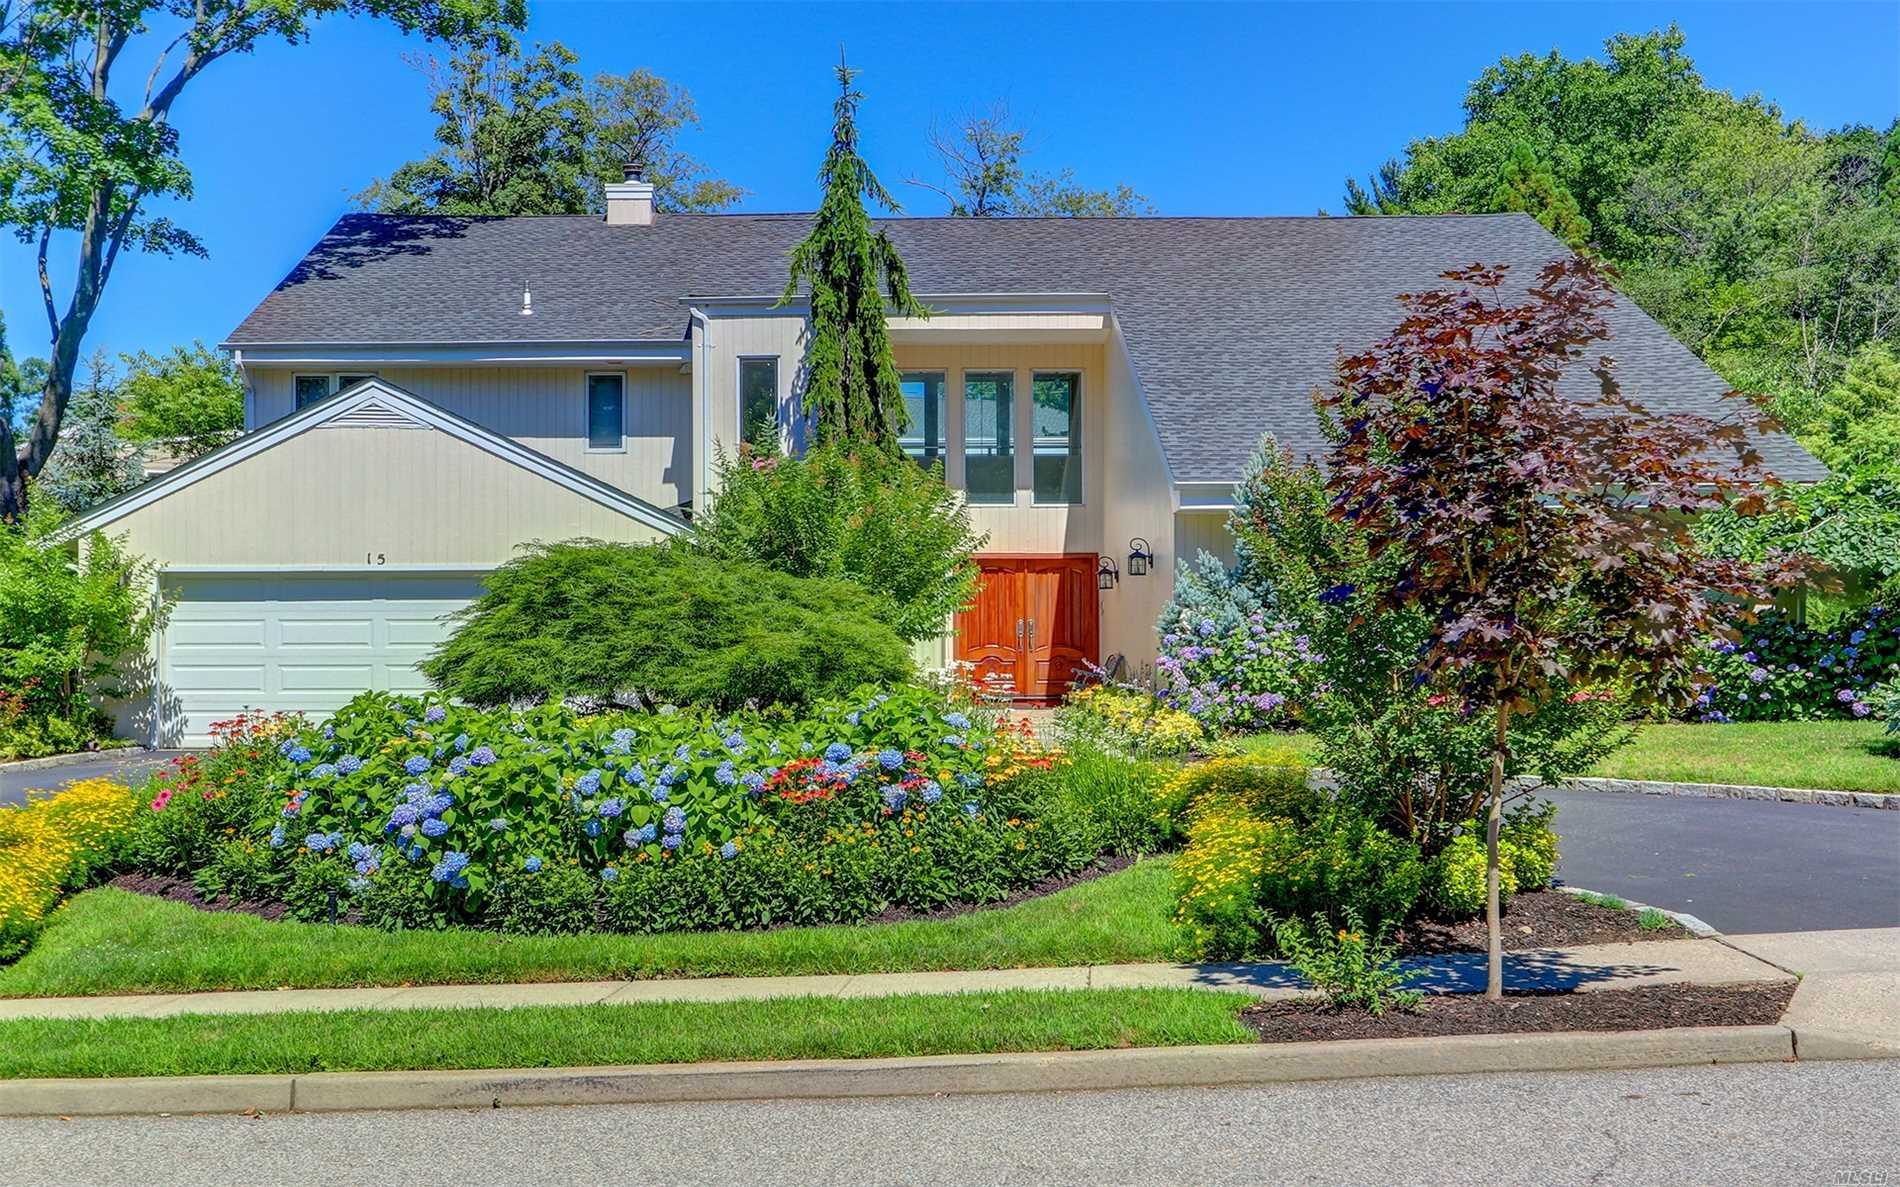 Photo of home for sale at 15 Shadetree Ln, Roslyn Heights NY